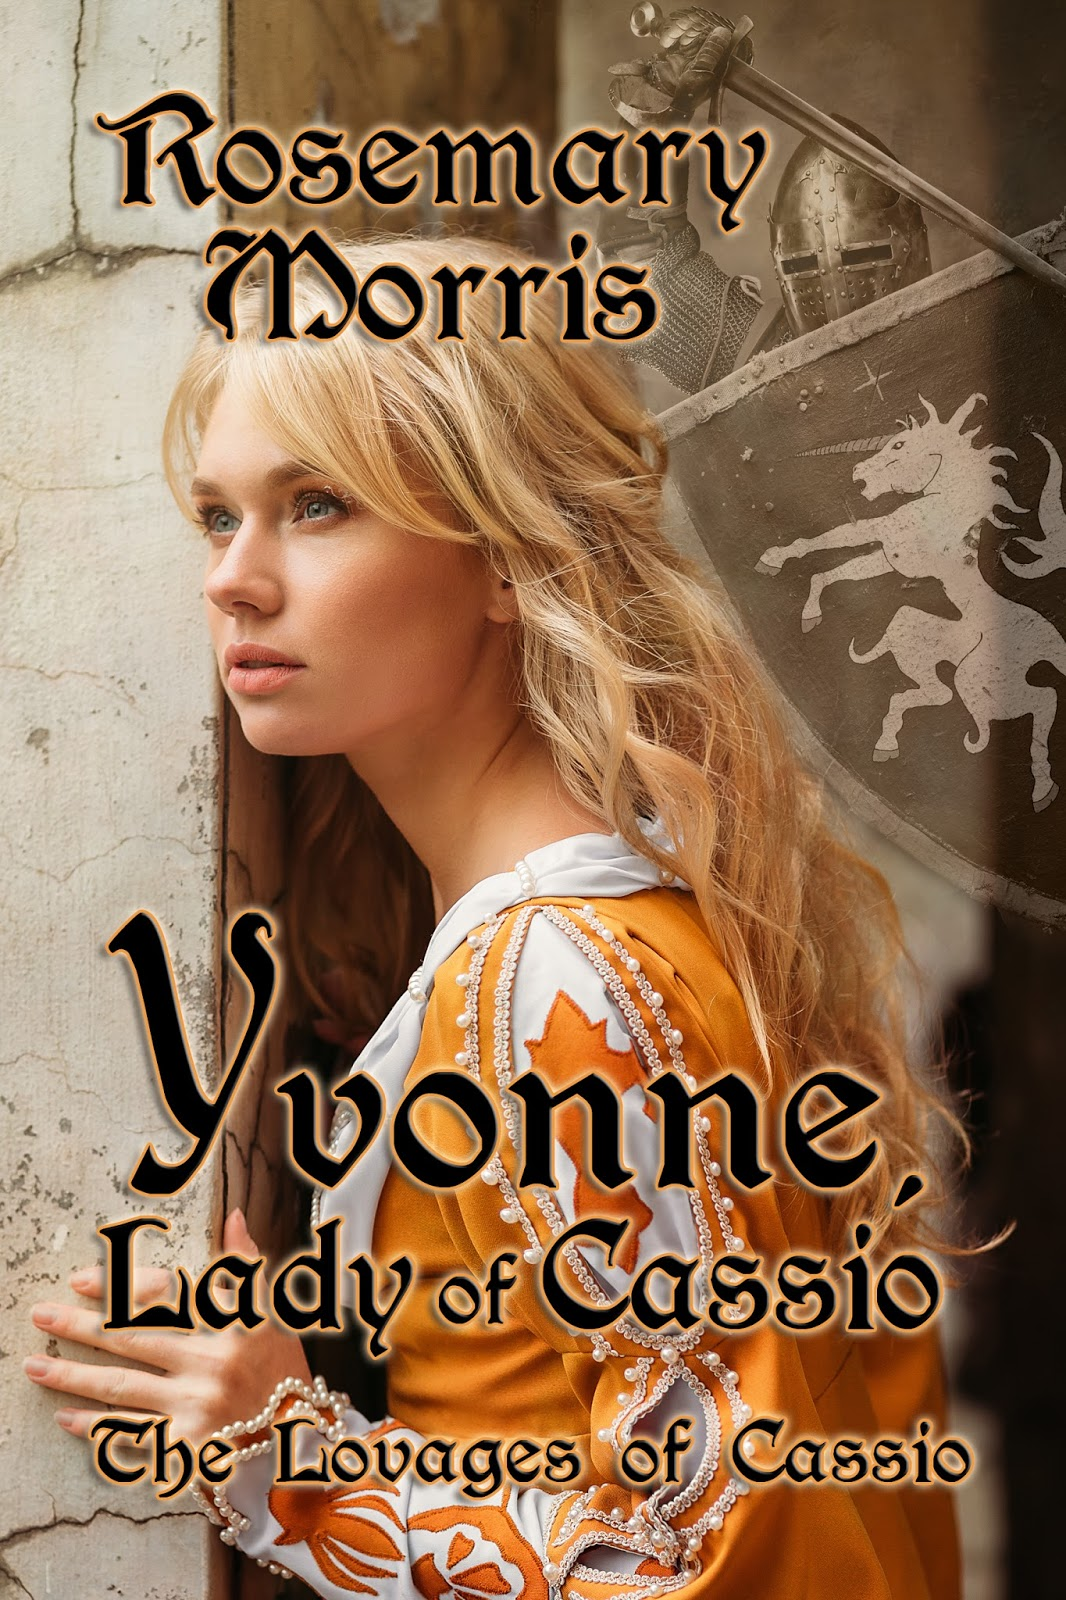 Yvonne, Lady Of Cassio By Rosemary Morris